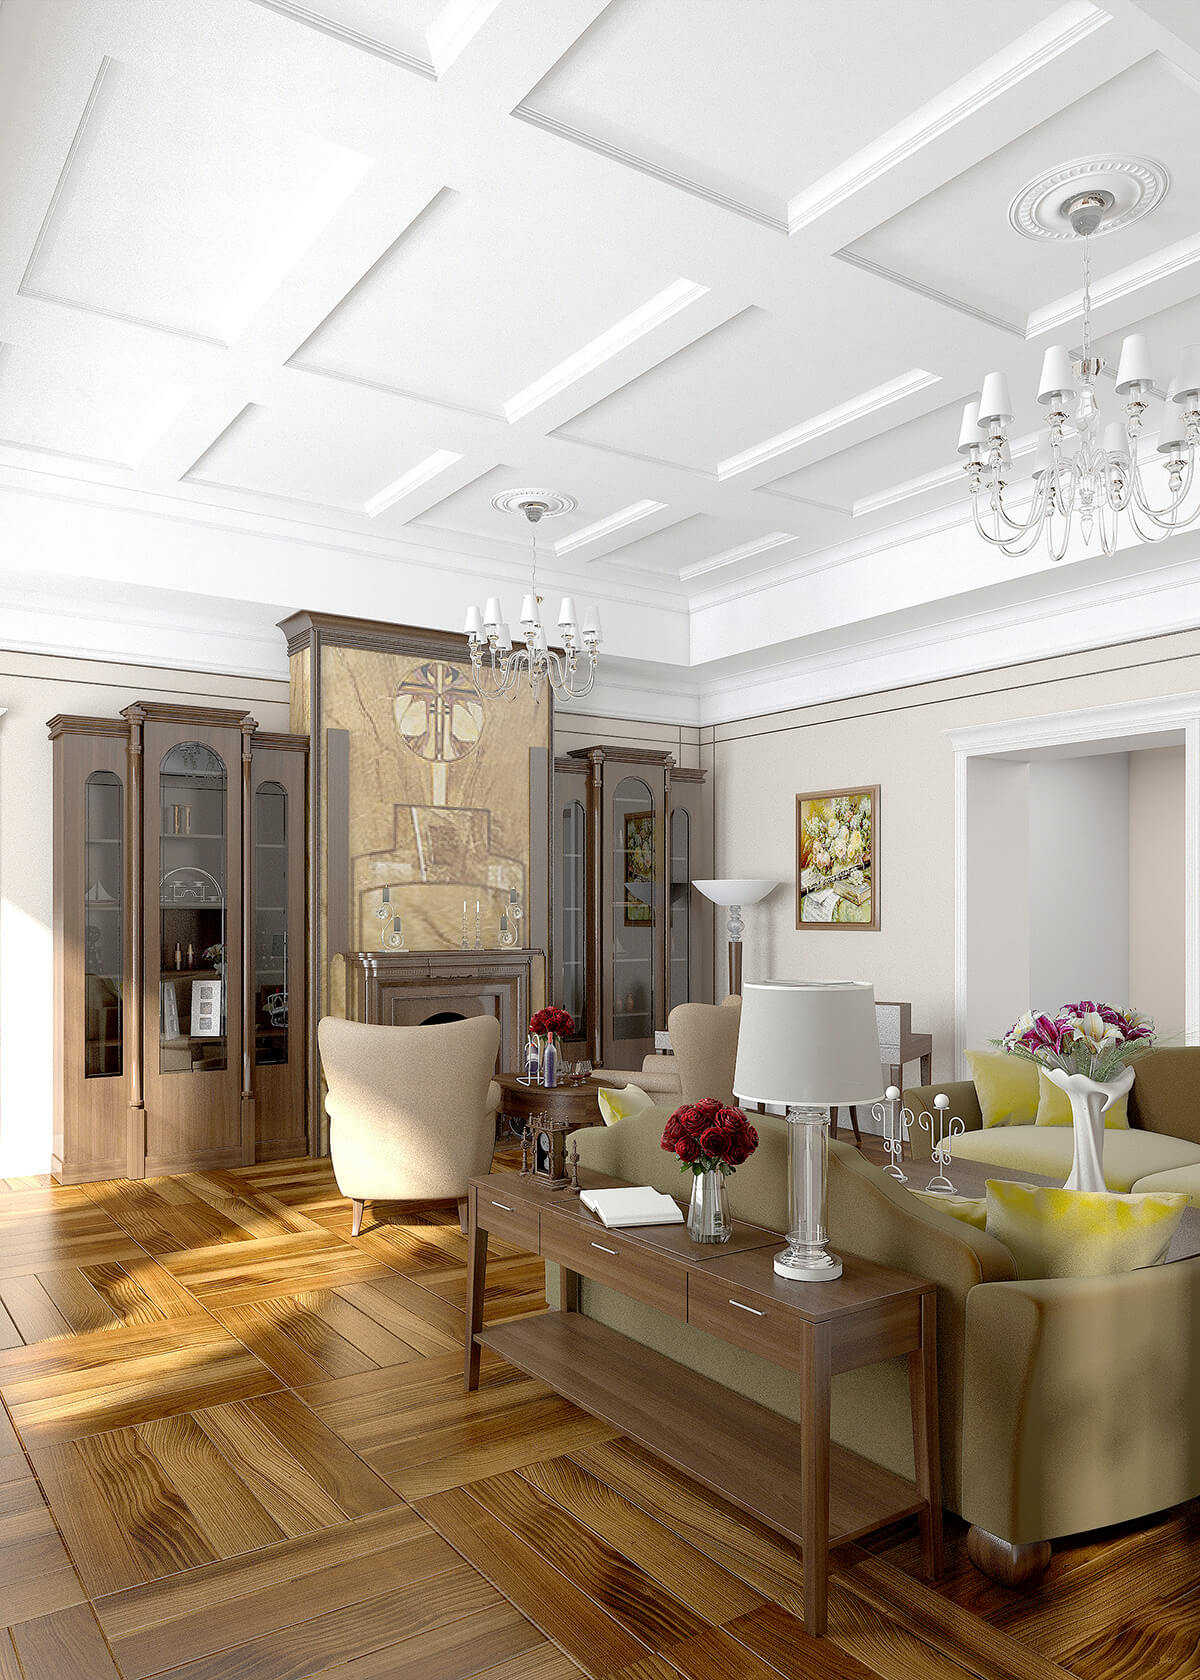 3D visualisation of a front room of the luxury house in Art deco style. London, UK.